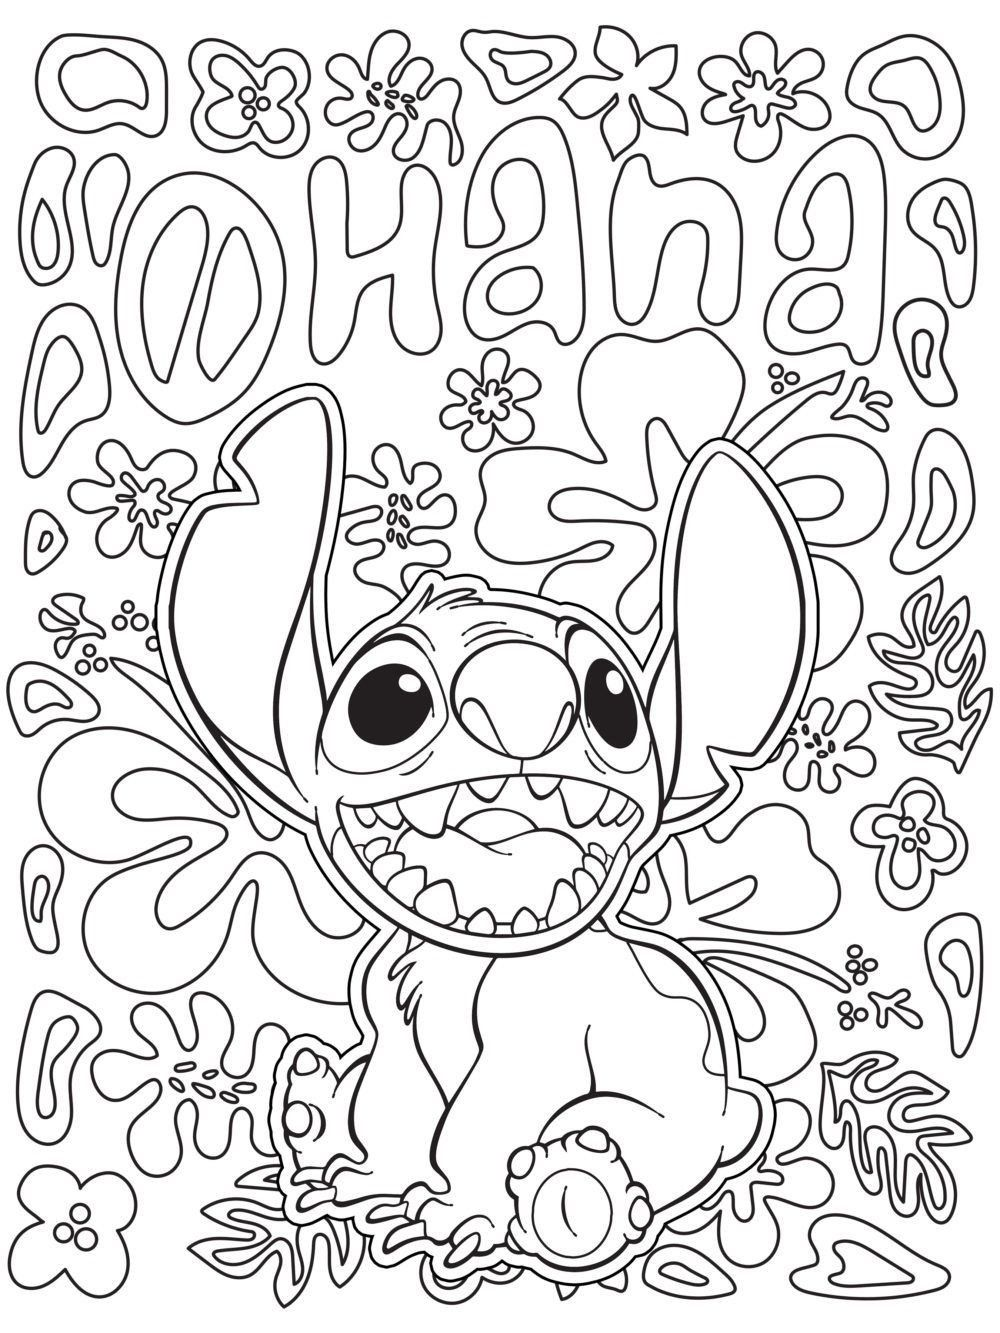 Coloring Pages To Relieve Stress 25 Inspired Picture Of Stress Relief Coloring Pages Stitch Coloring Pages Free Disney Coloring Pages Cartoon Coloring Pages